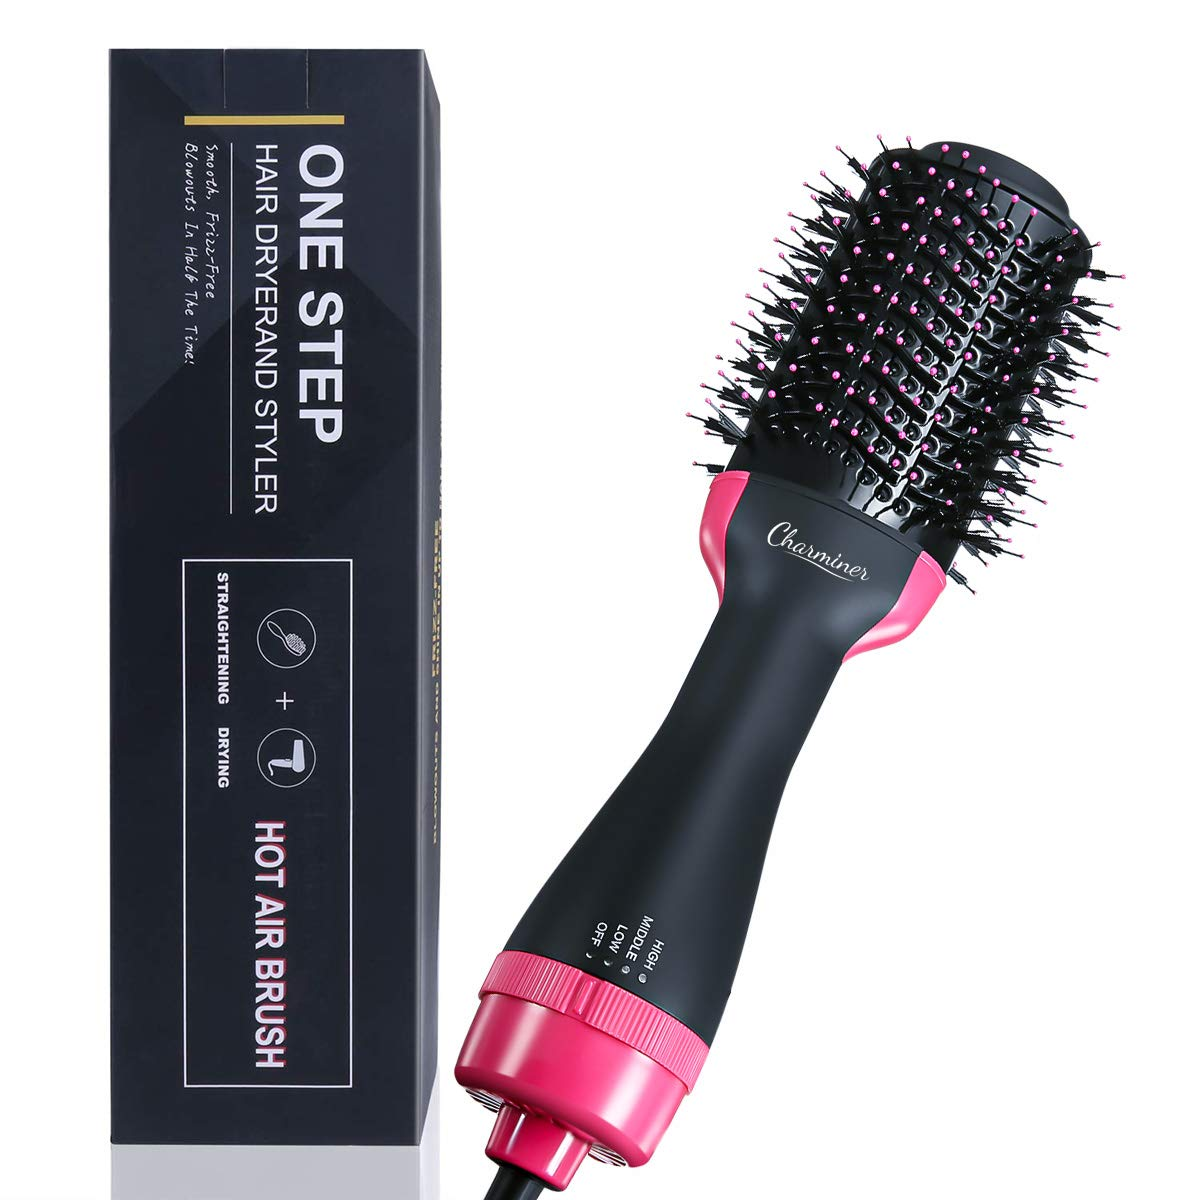 CHARMINER One Step Hair Dryer and Volumizer, Negative Ion Generator Hair Curler Brush for Dry, Straighten and Curling, Hot Air Styling Brush to Smooth Frizz with Negative Ionic Technology for Women by CHARMINER